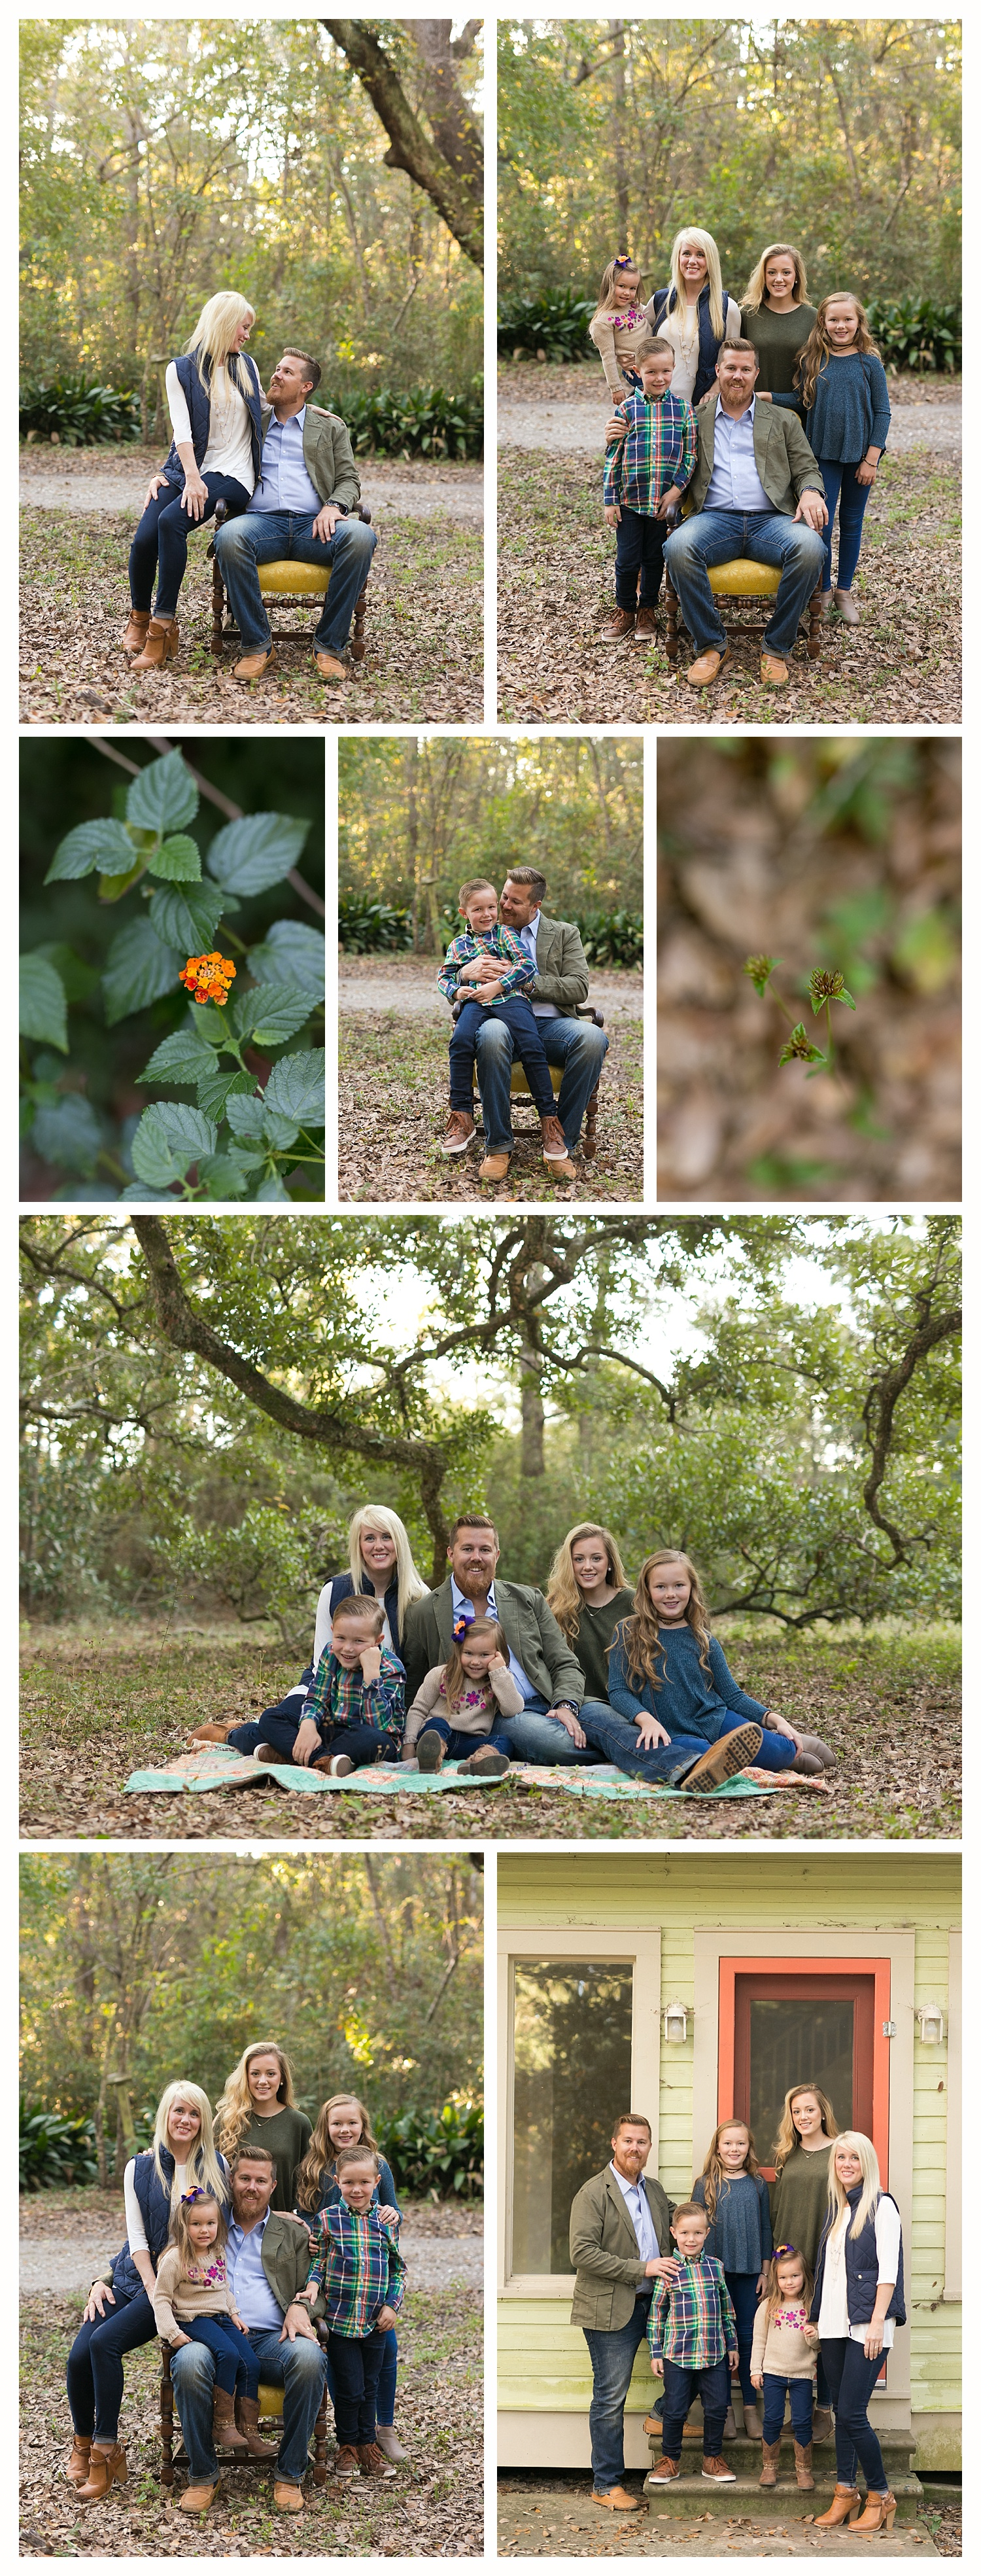 Family Photographer in Ocean Springs, Mississippi (family portraits in the woods with vintage chair)